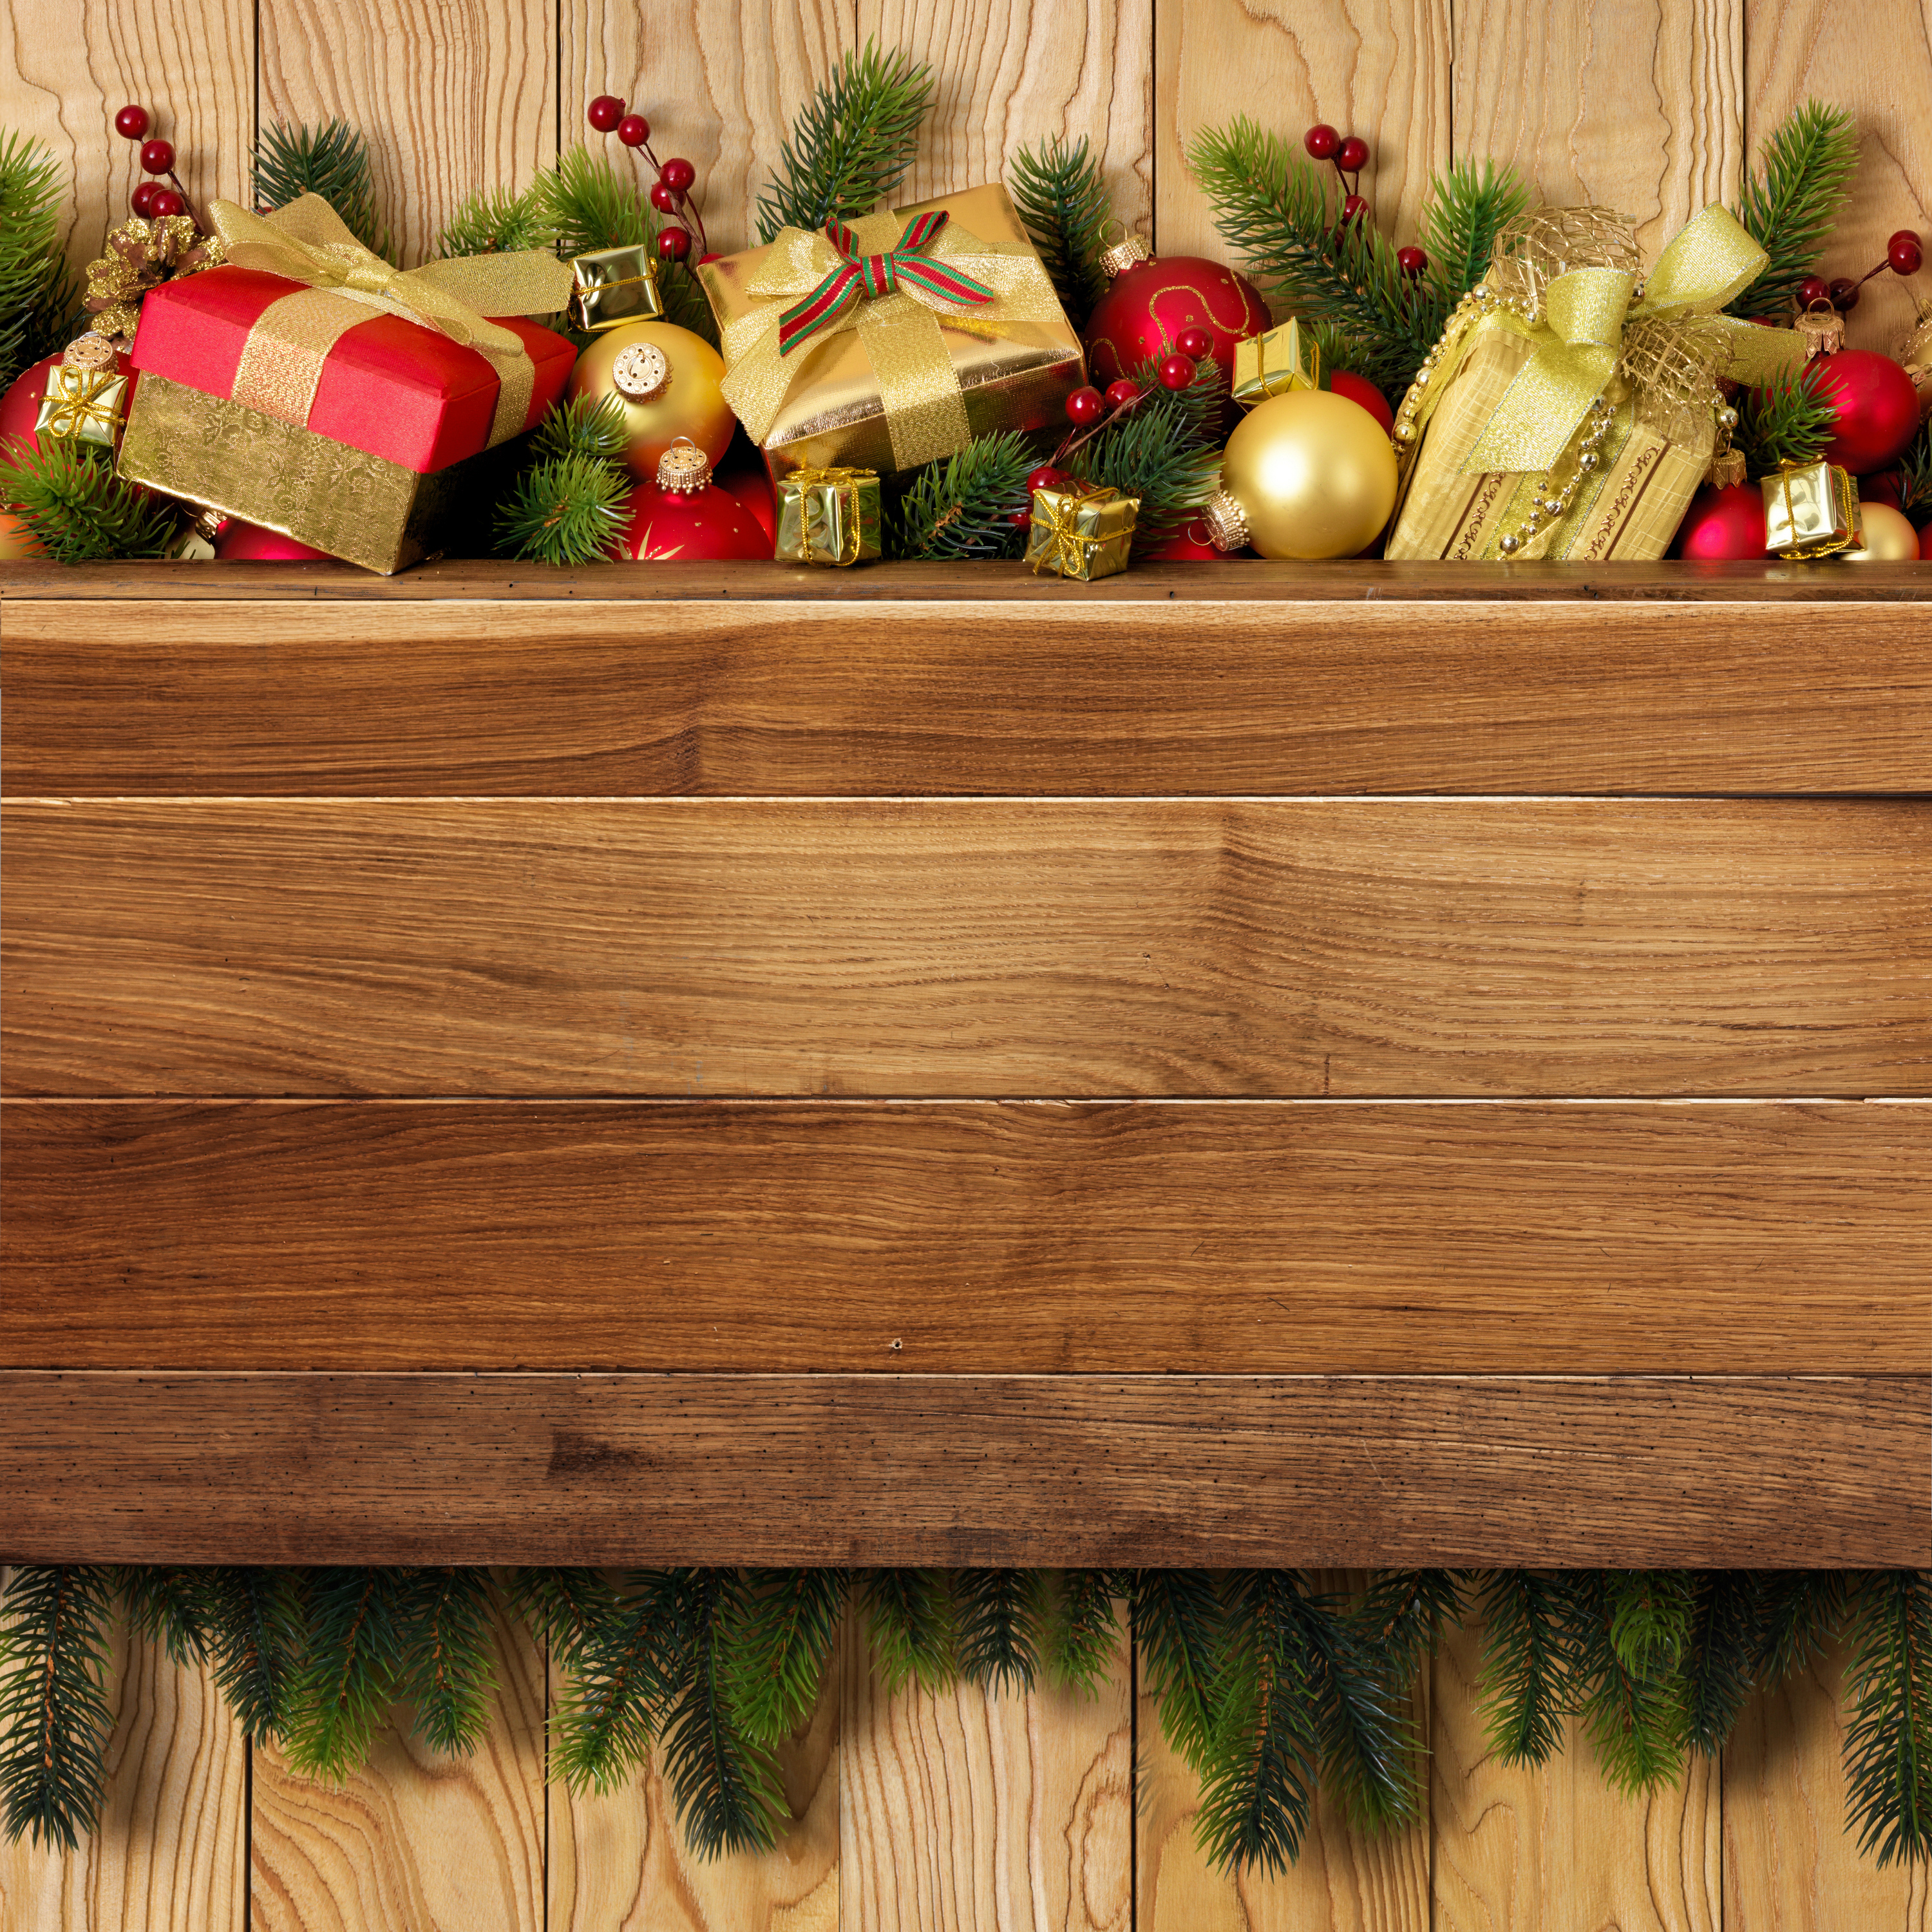 Wood christmaas clipart picture freeuse library Christmas Wooden Background with Gifts and Decorations ... picture freeuse library